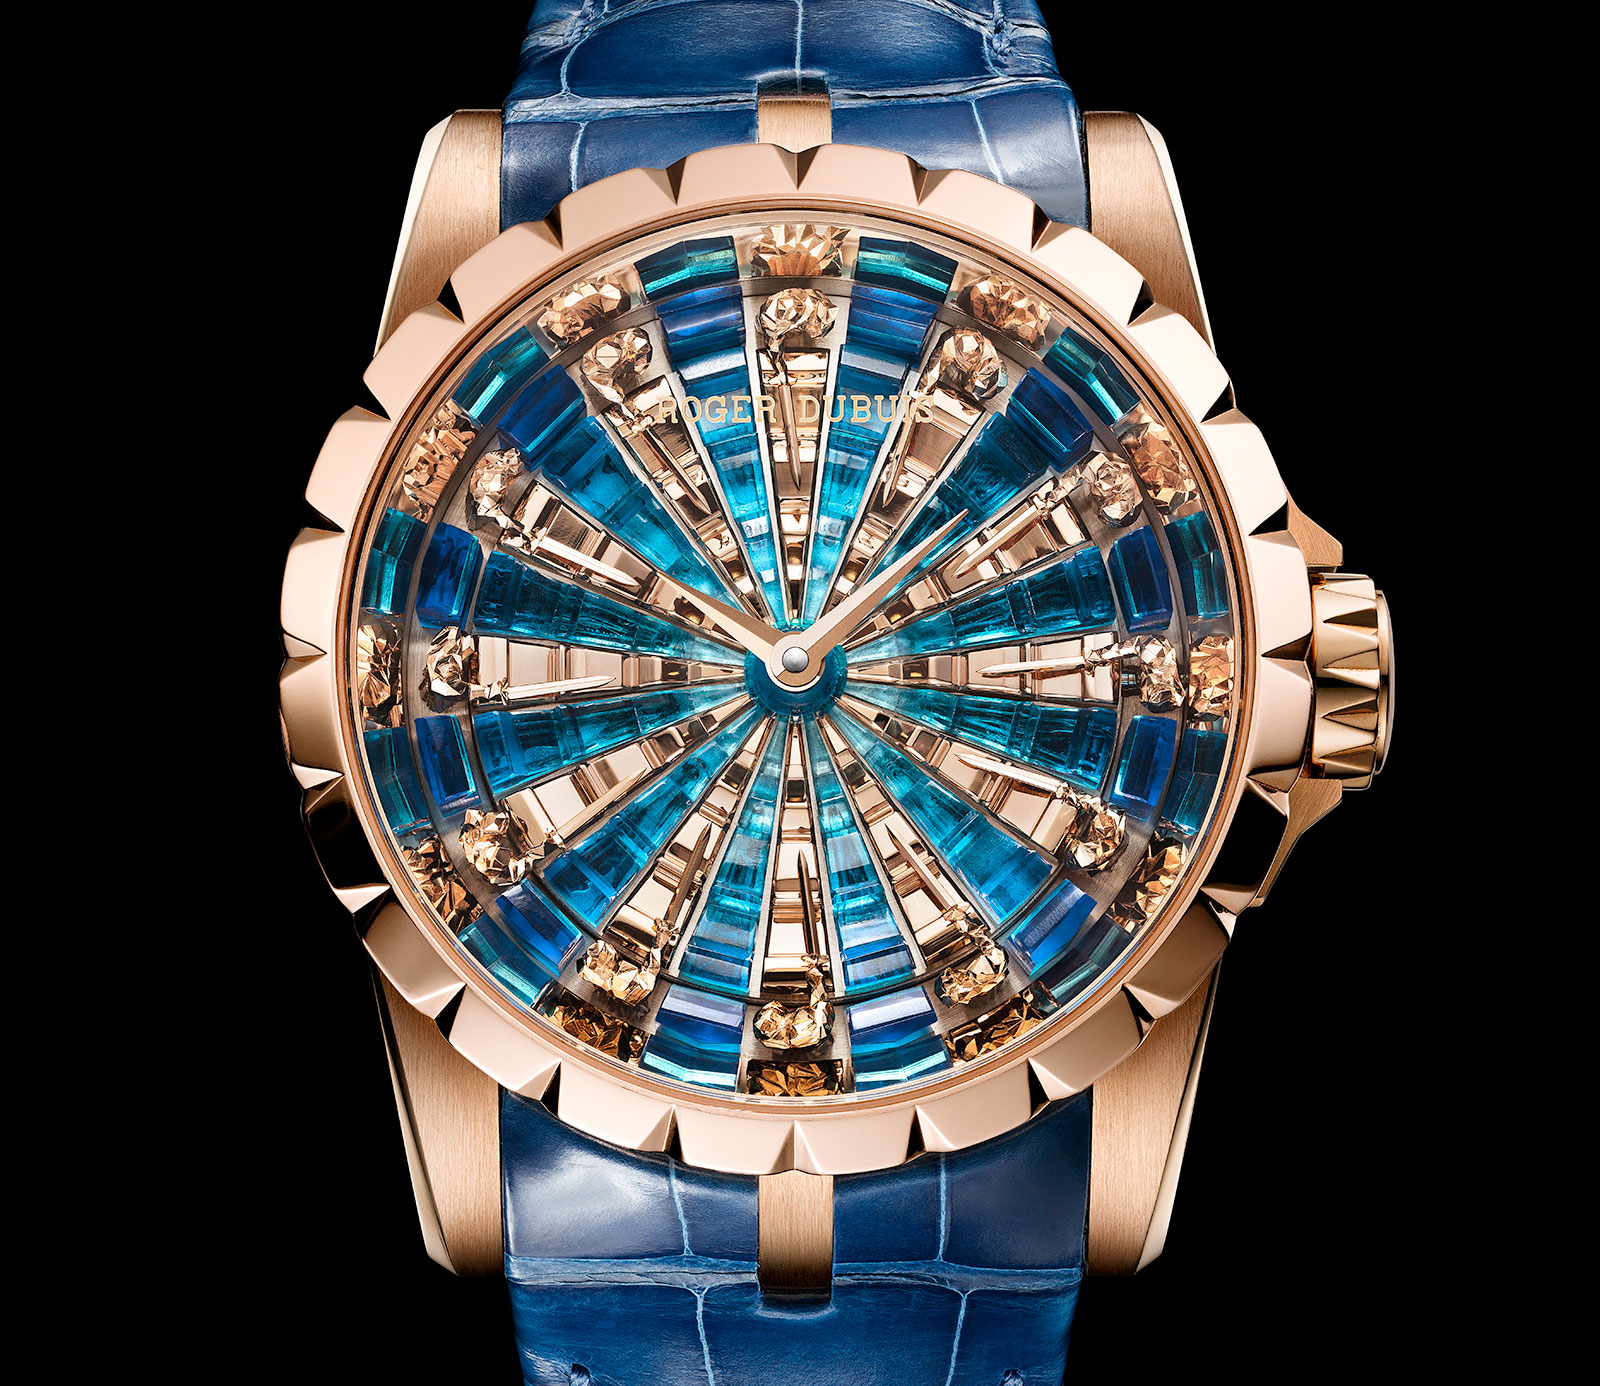 Roger Dubuis Knights of the Round Table III-3